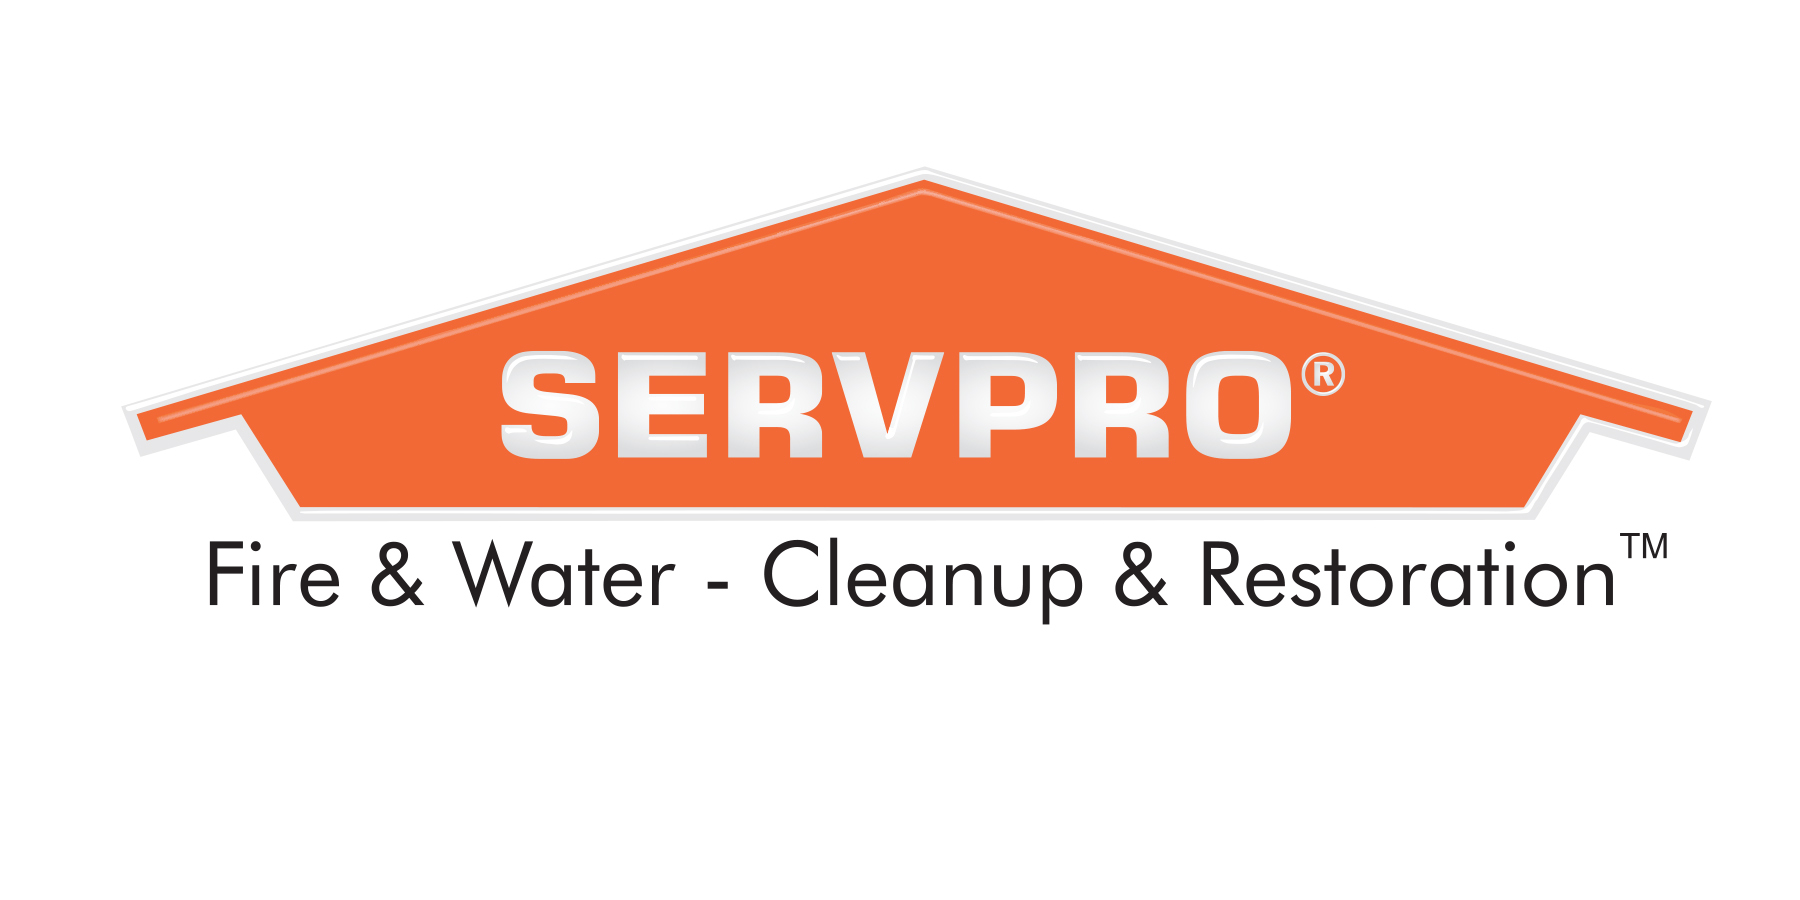 SERVPRO Expands Partnership With Commercial Businesses With First Publicly Available Disinfectant Product | Business Wire